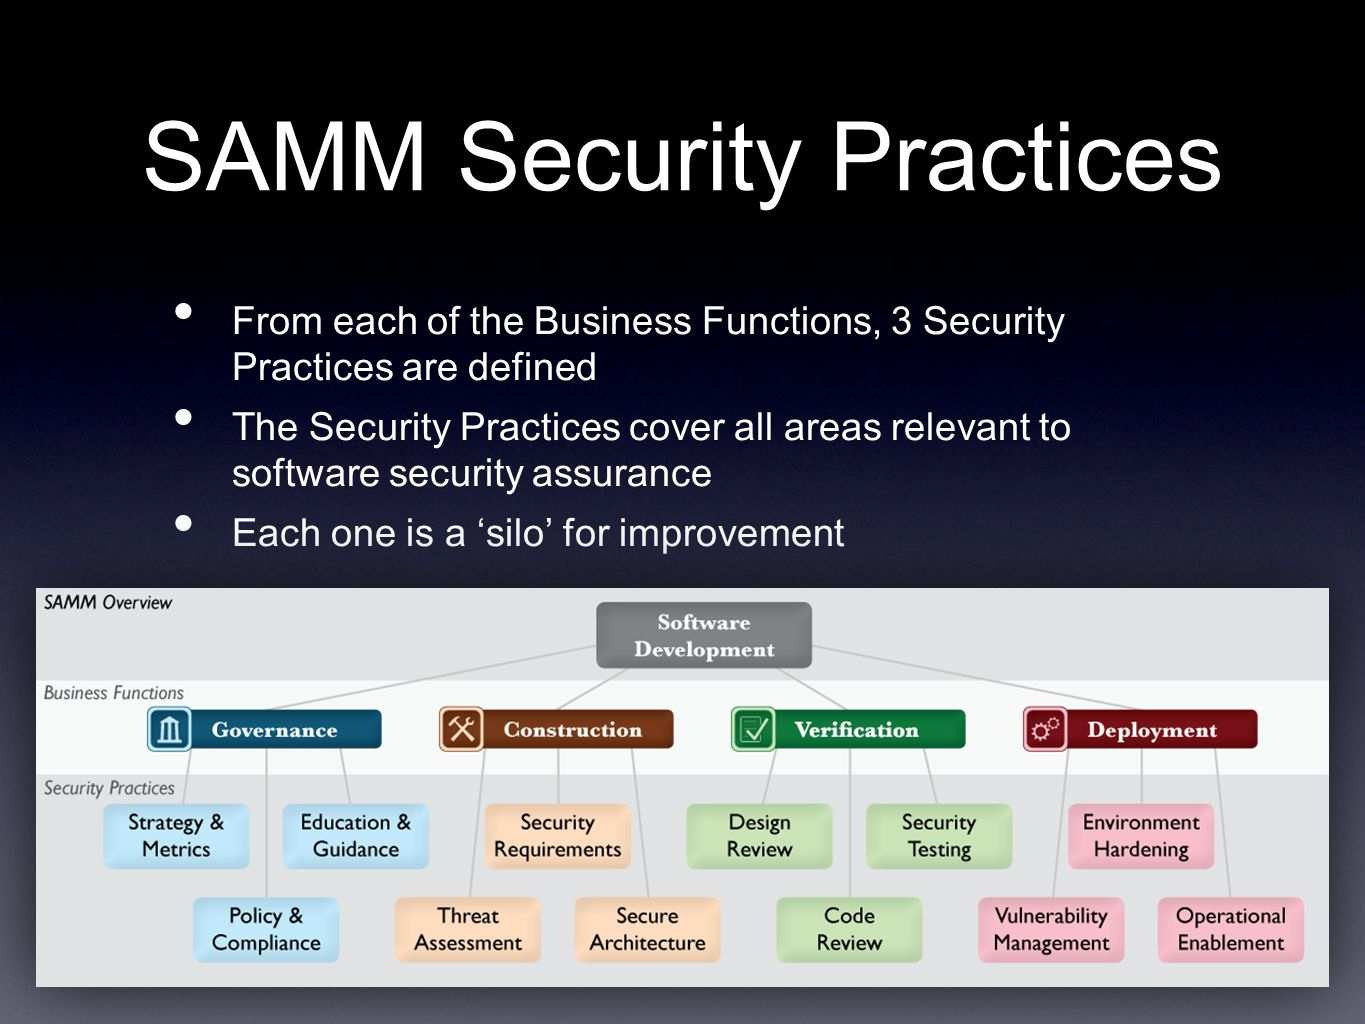 SAMM Security Practices